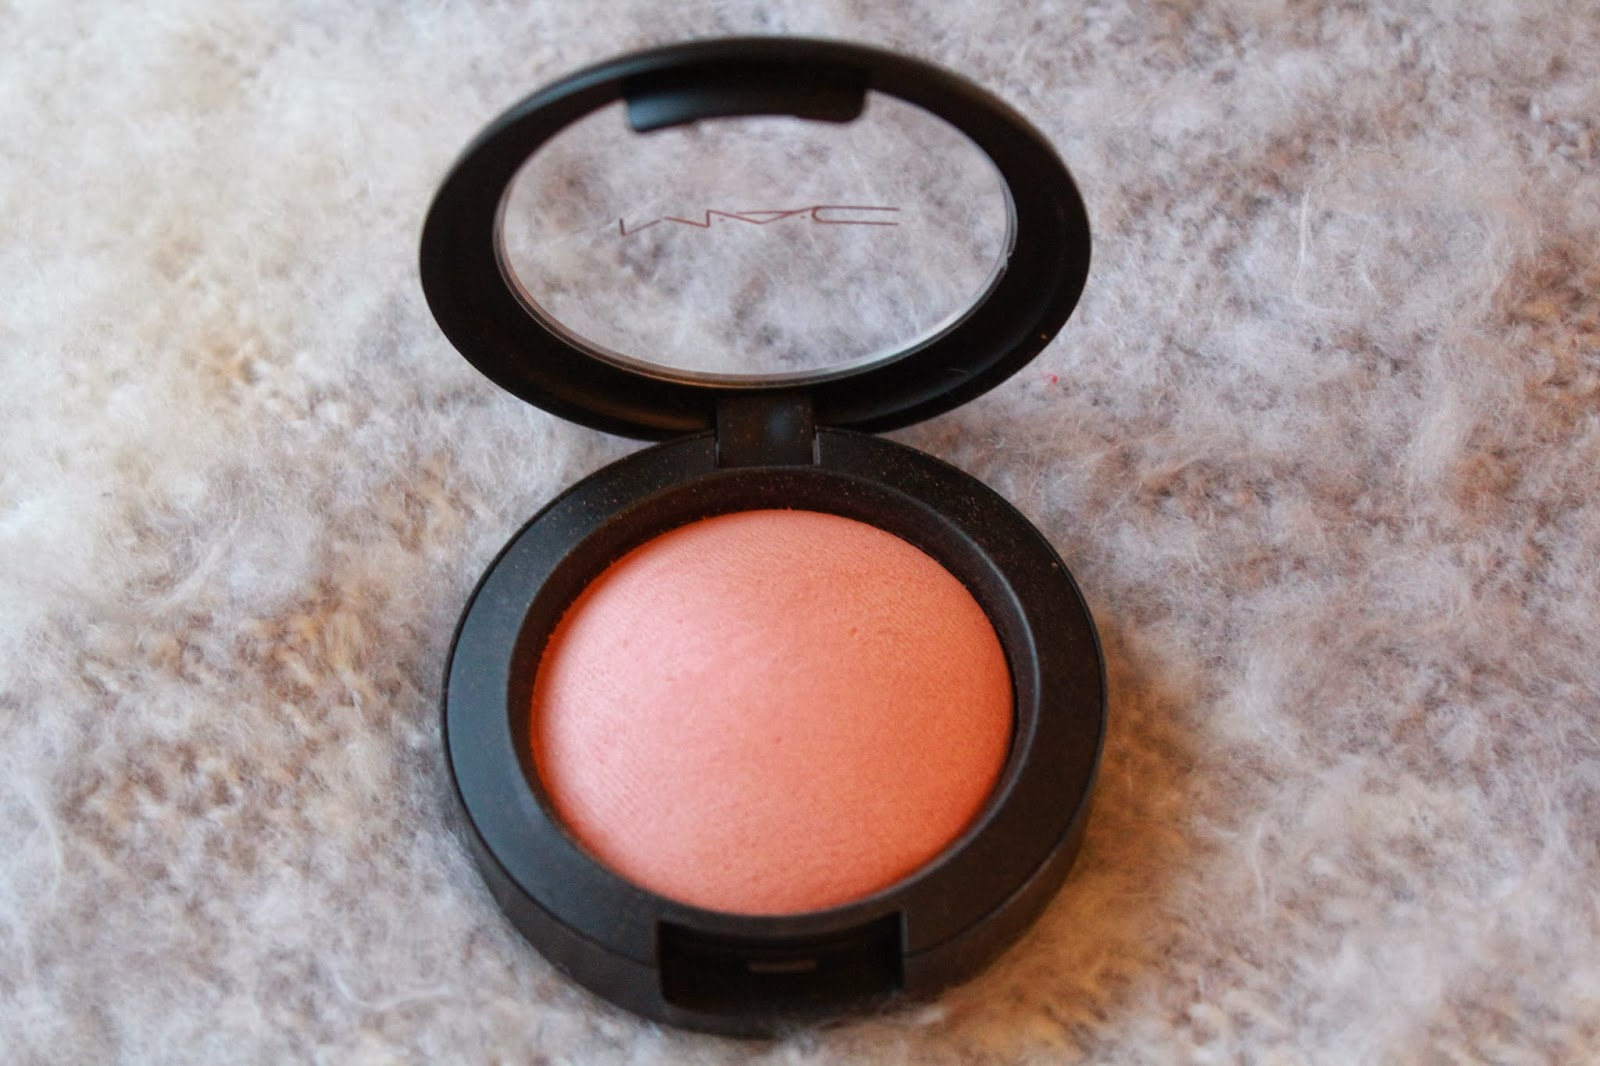 MAC Lured to Love Ltd Edition Blush